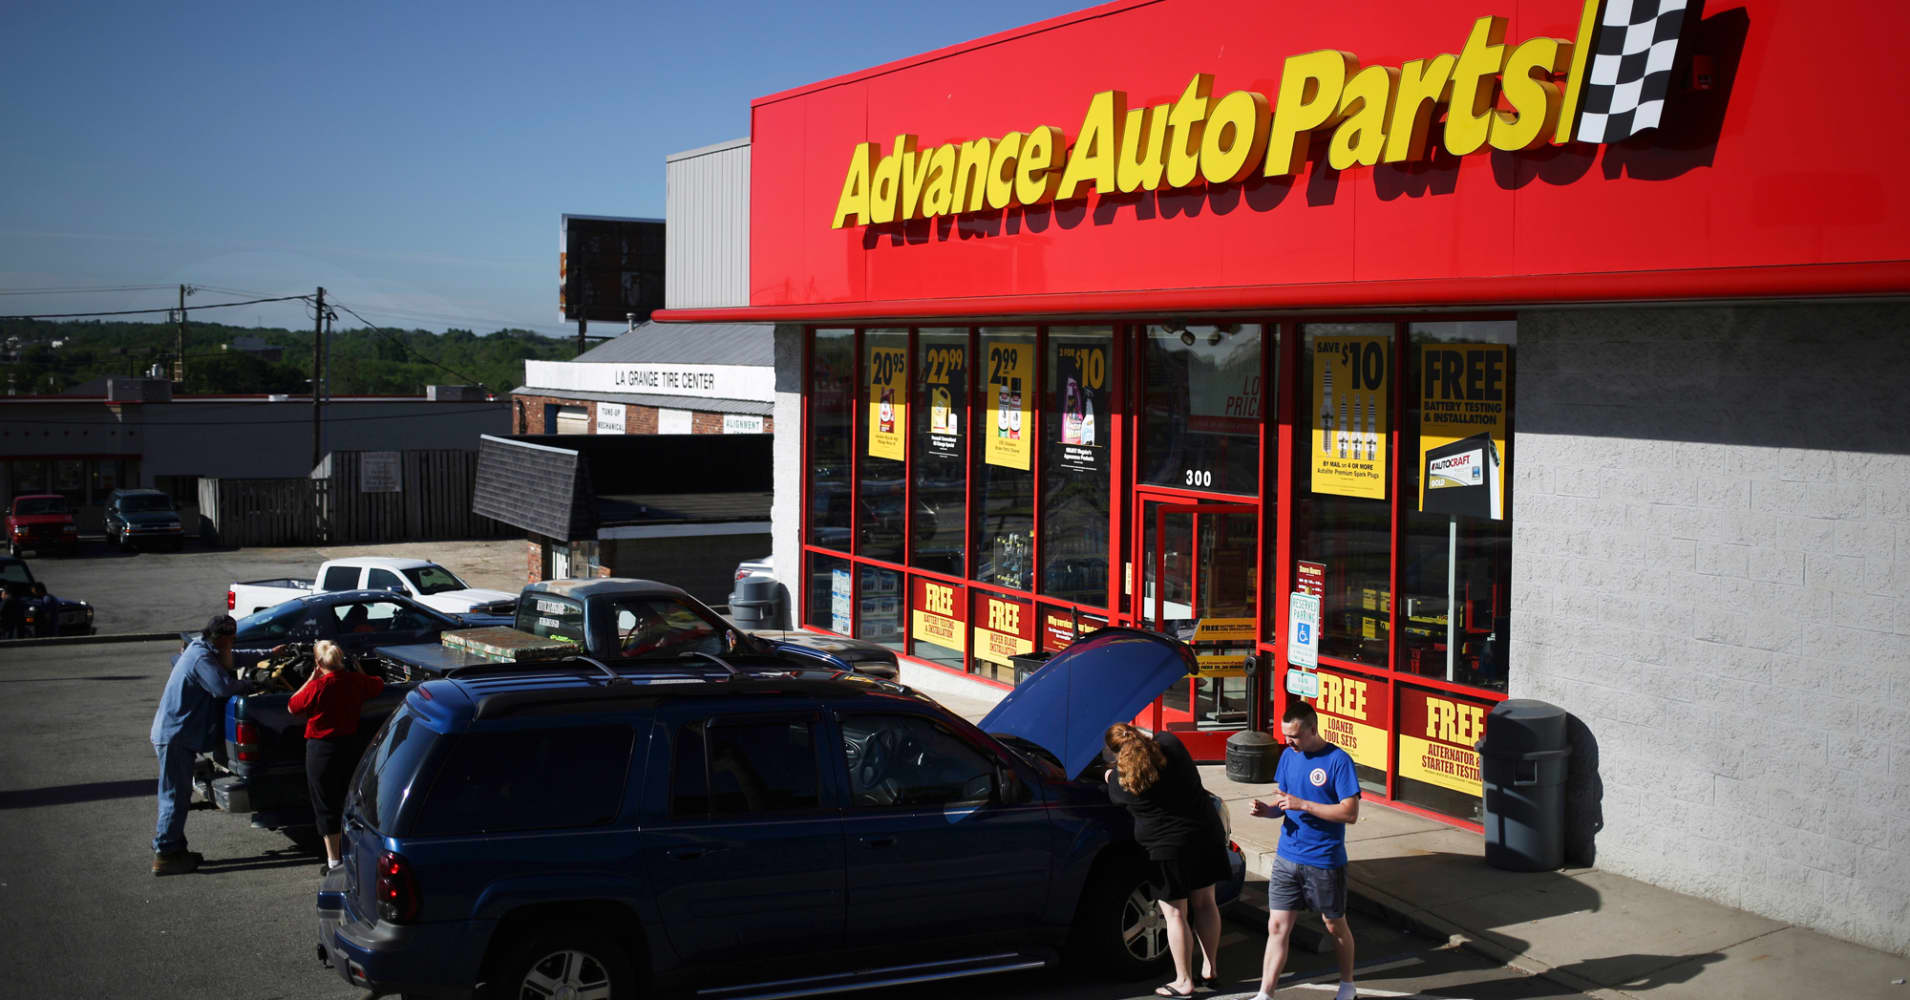 Advance Auto Parts 4myrebate Com >> Advancedautoparts Advance Auto Parts Of Plymouth The